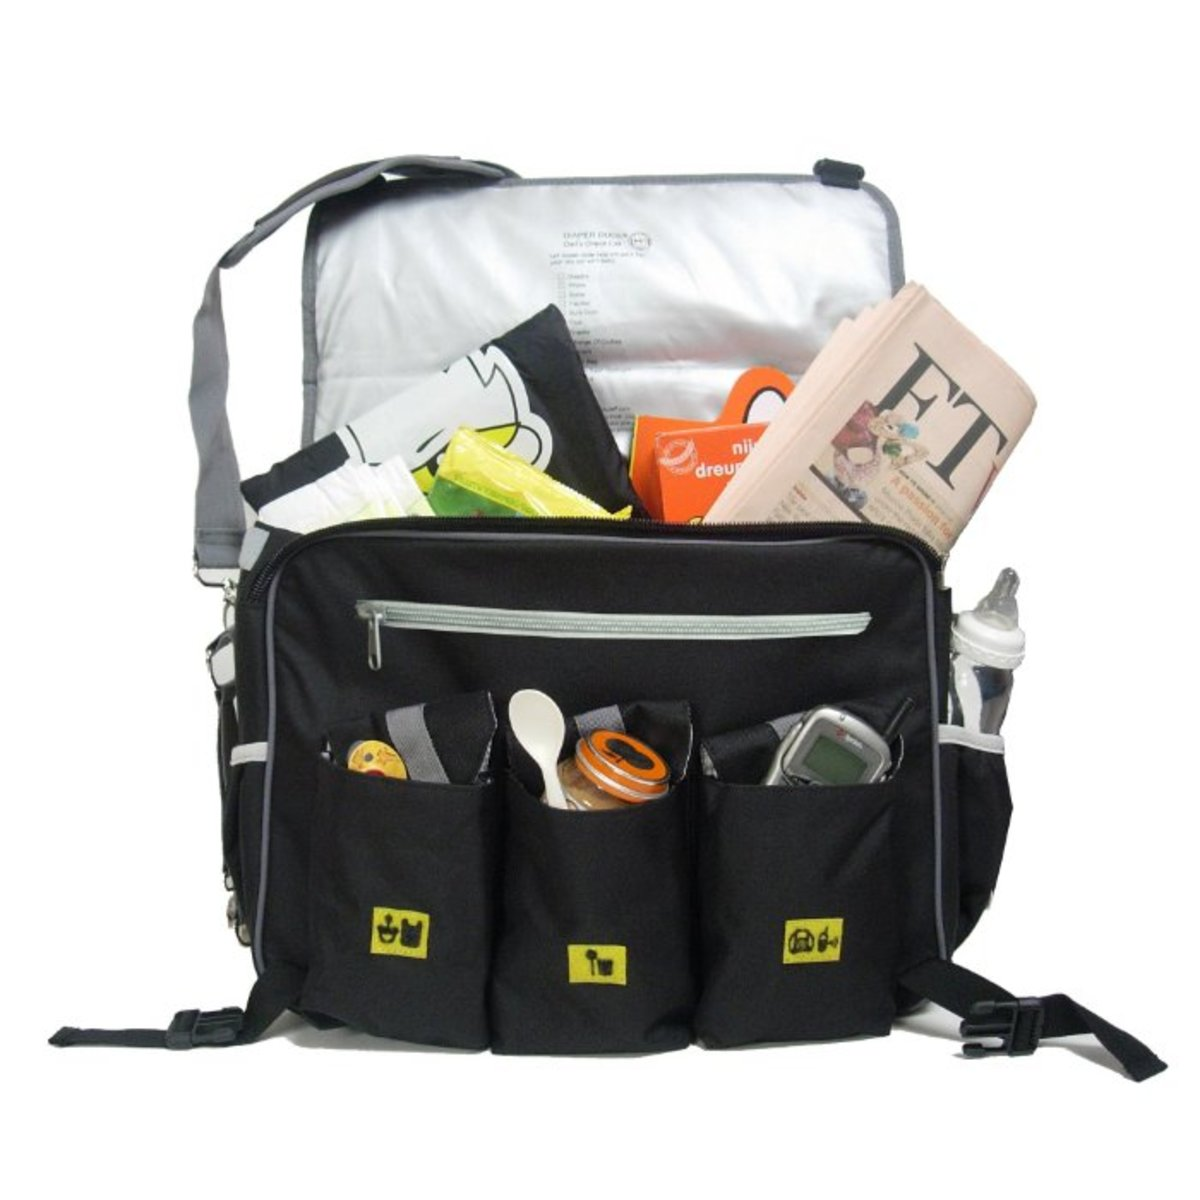 Diaper Dude Black Deluxe Diaper Bag - Loaded with stuff